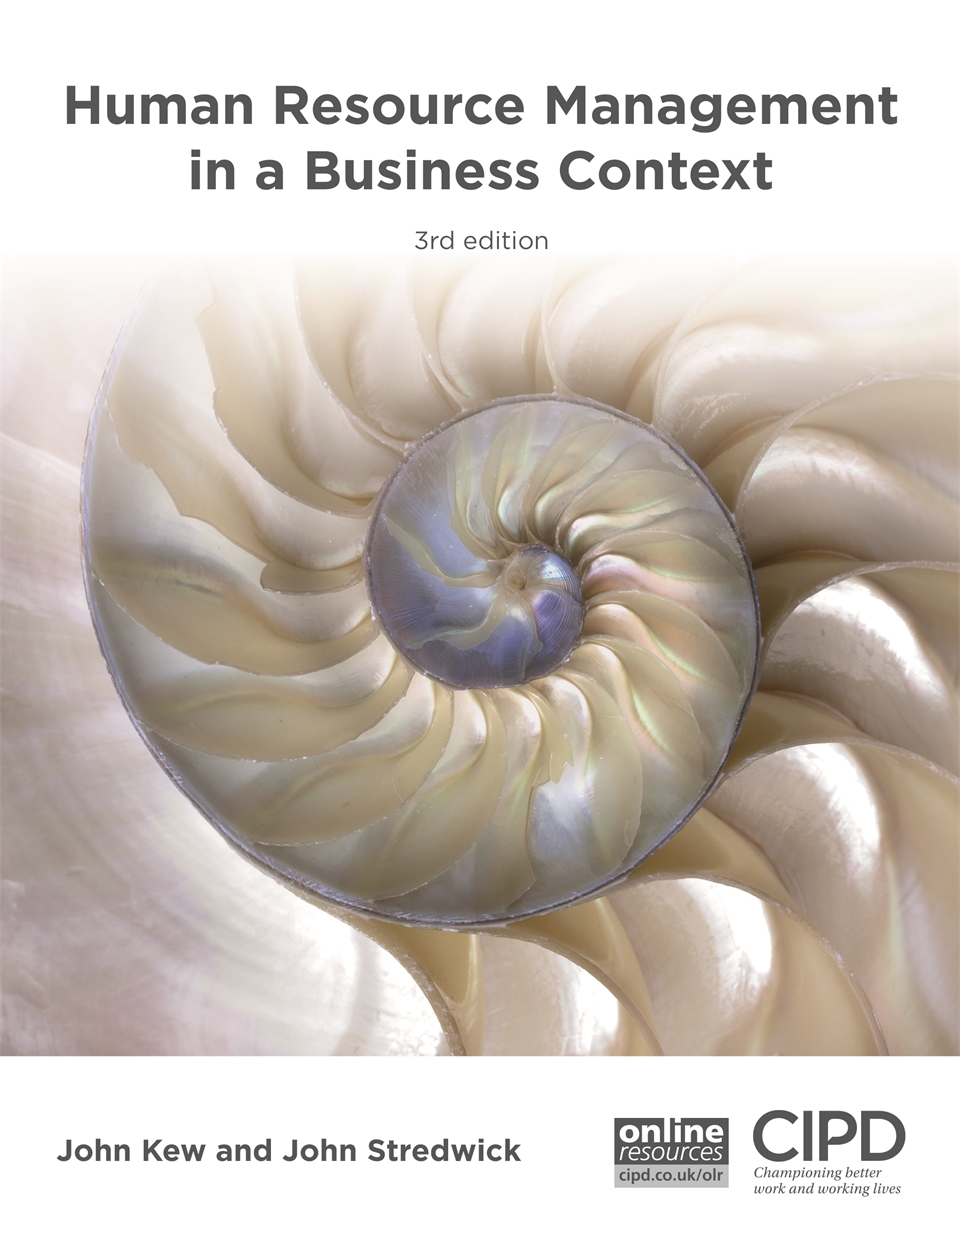 Human Resource Management in a Business Context (9781843984047)